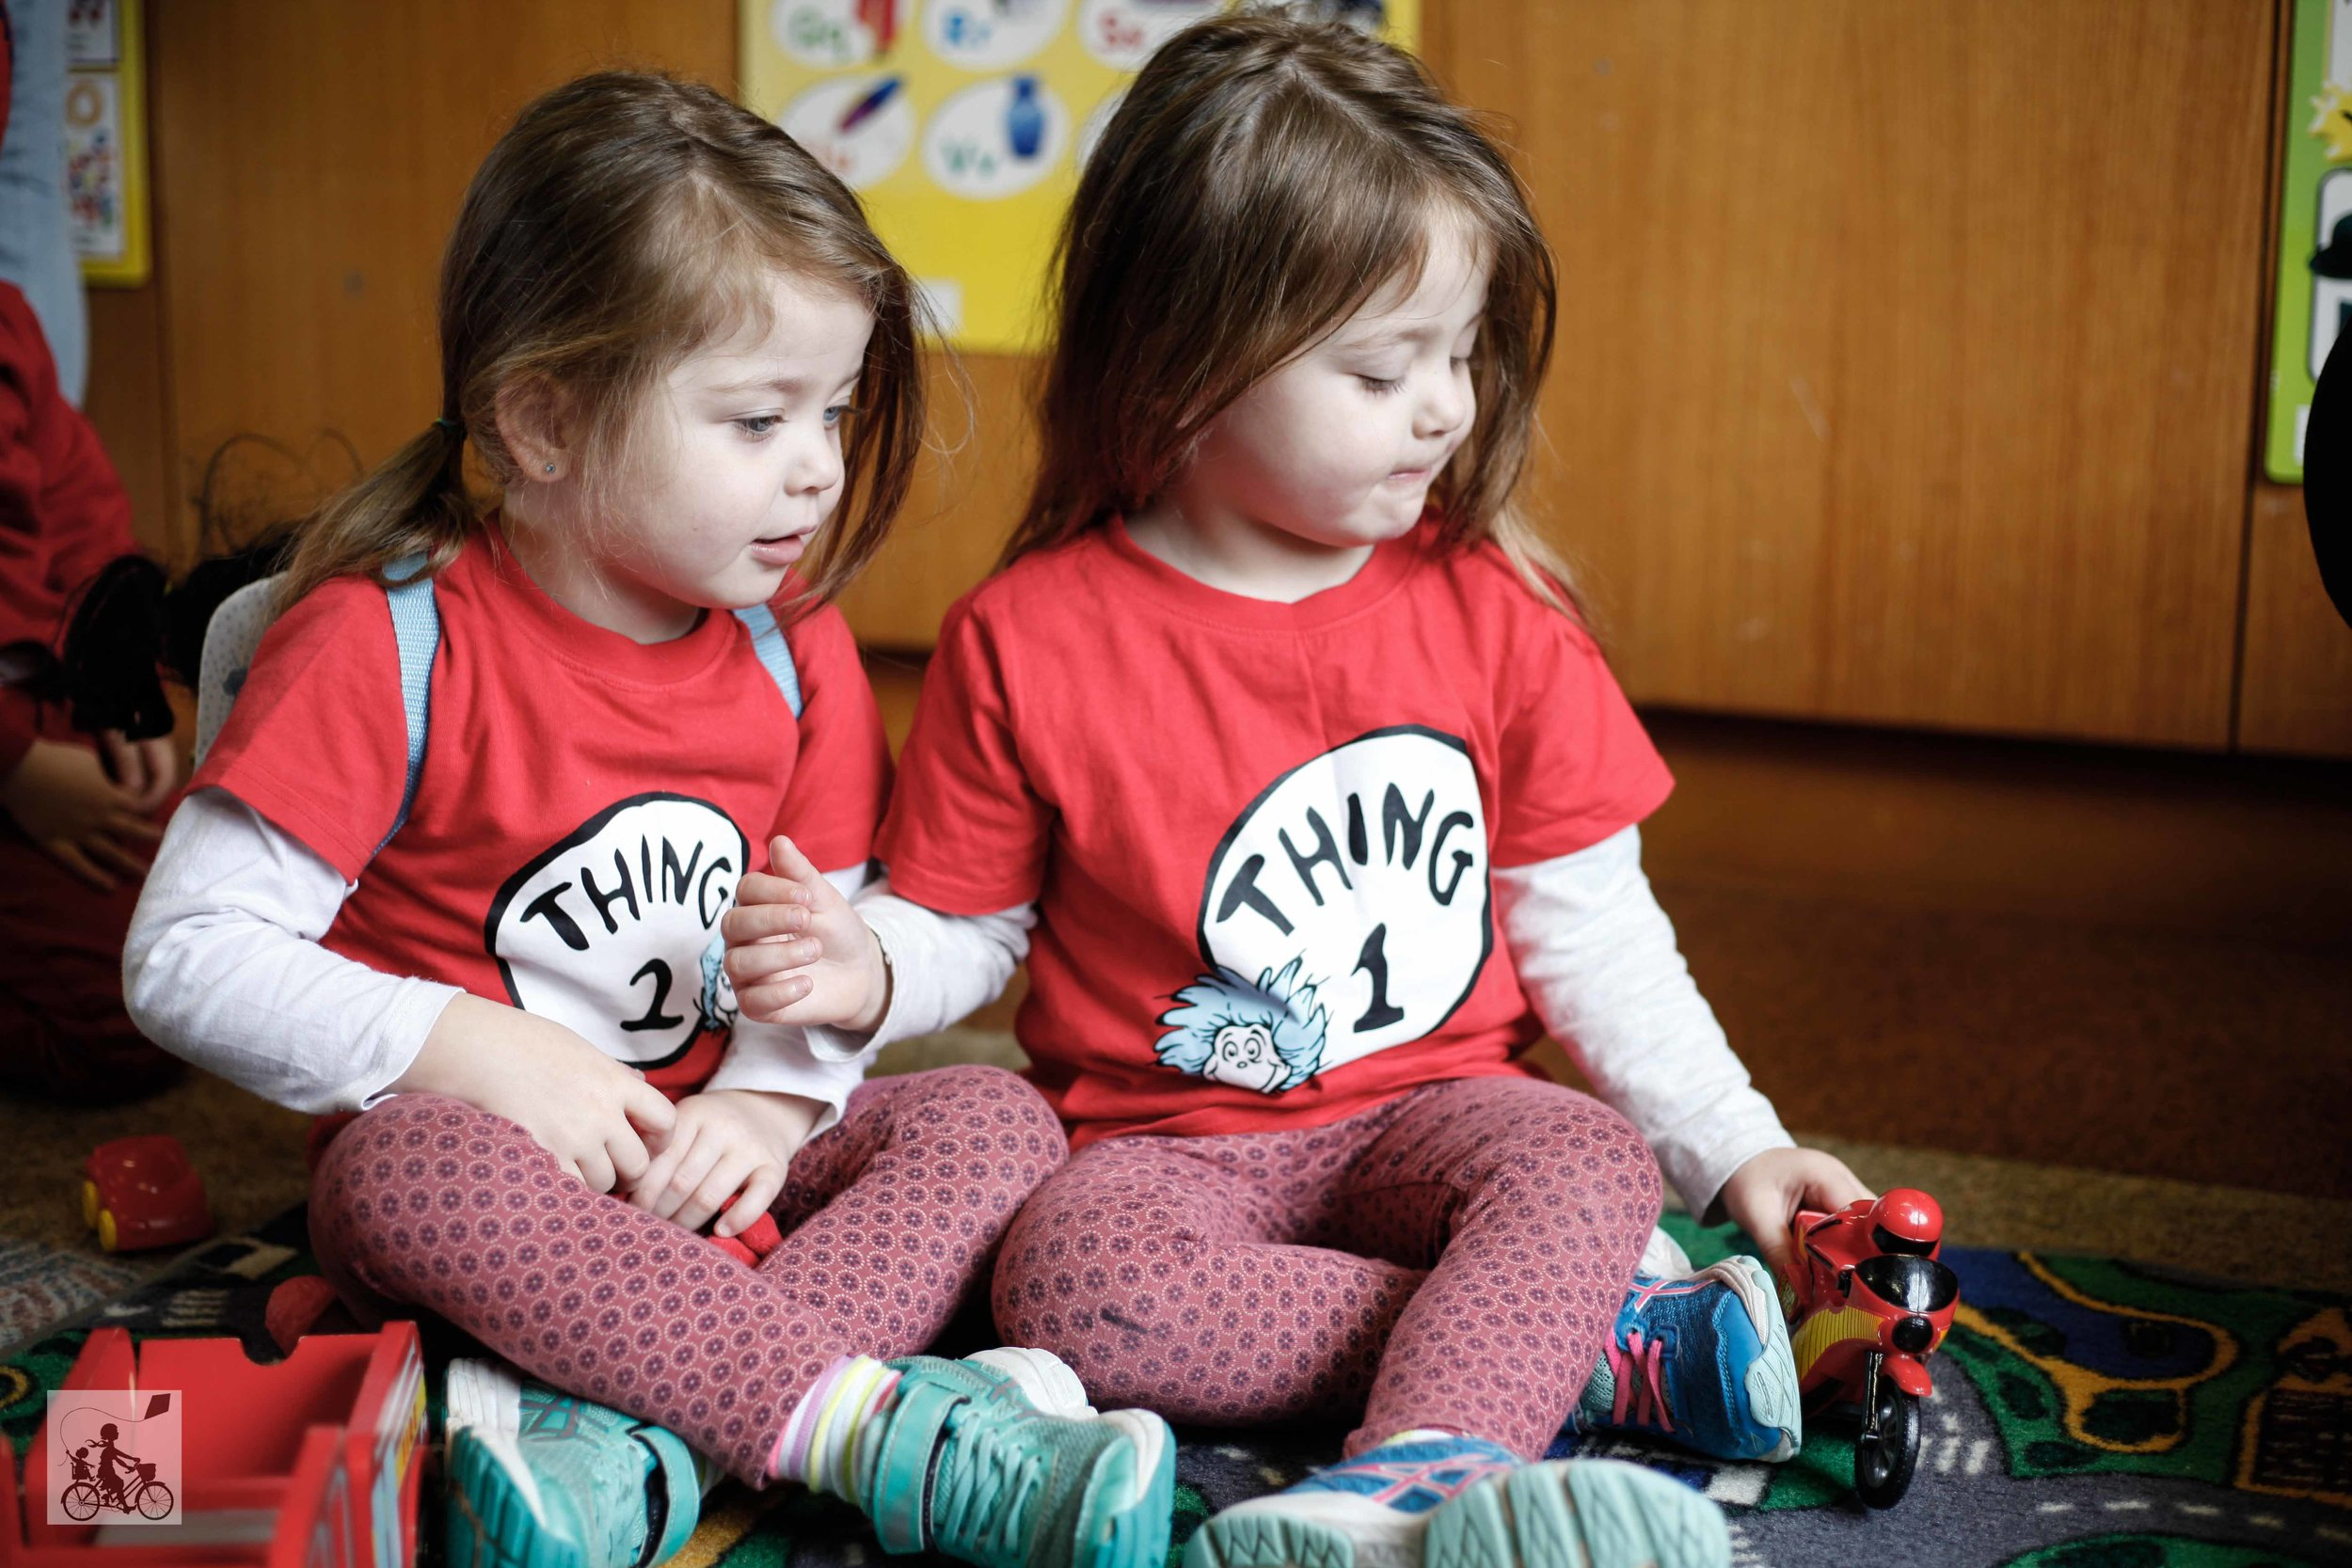 playgroup in focus - knox multiple births association playgroup